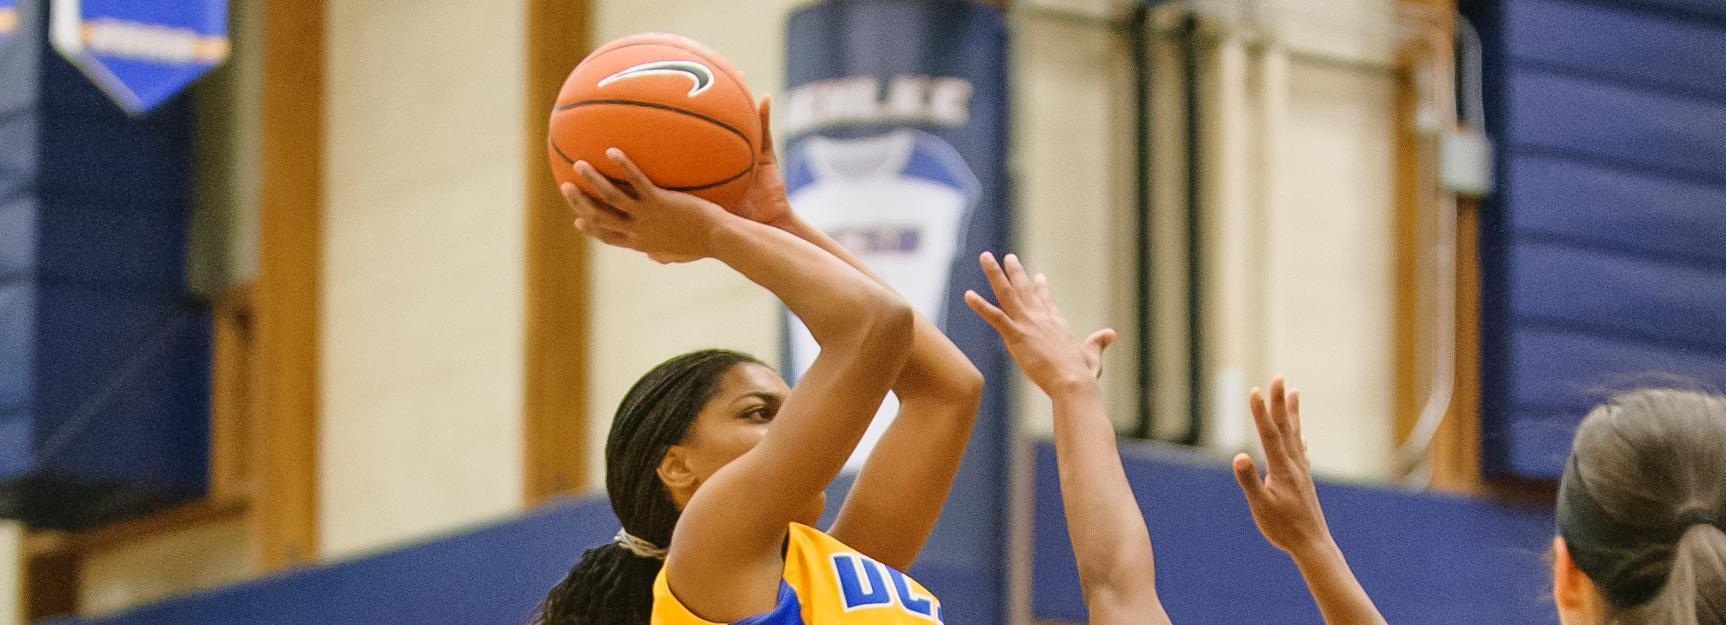 Upcoming Women's Basketball Games to Feature Holiday Promotions